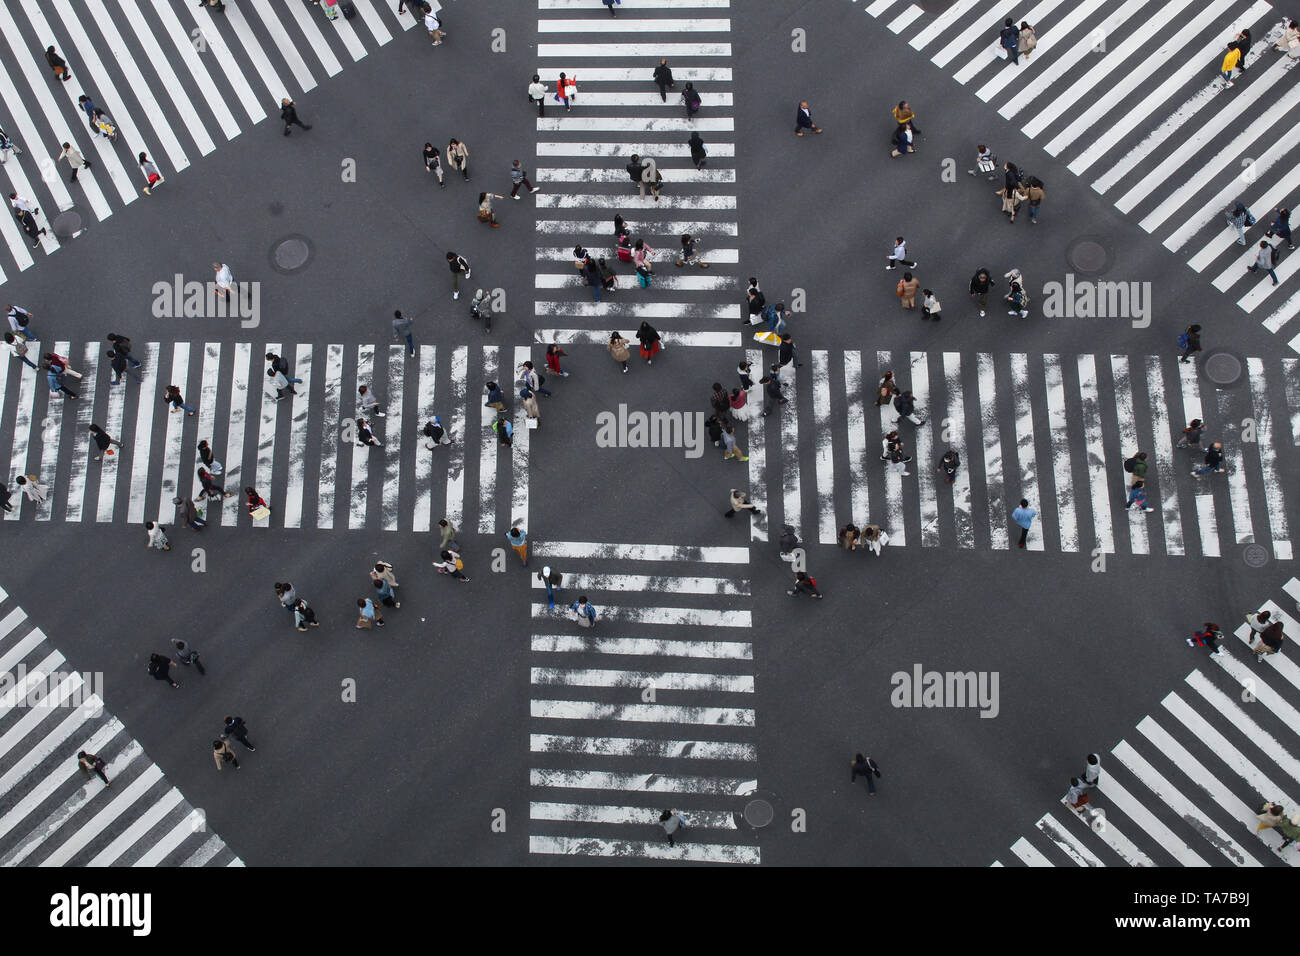 A view of a scramble crossing from above at Ginza, Tokyo - Stock Image